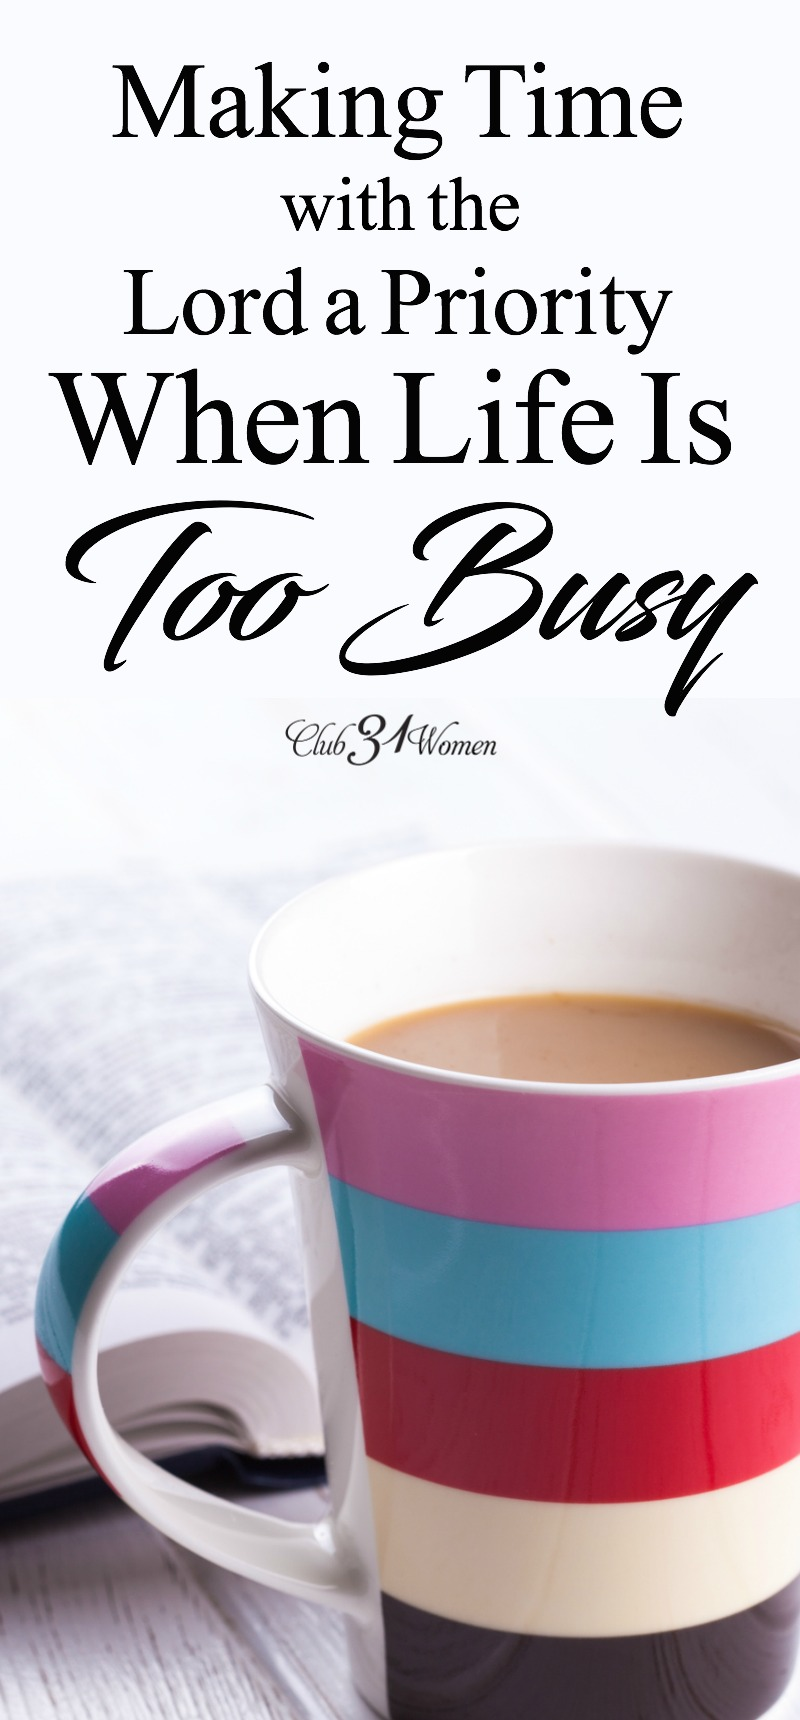 Life gets busy and we often push aside time with God. But what if He is the Source we need first? How can we keep Him a priority in our busy lives? via @Club31Women